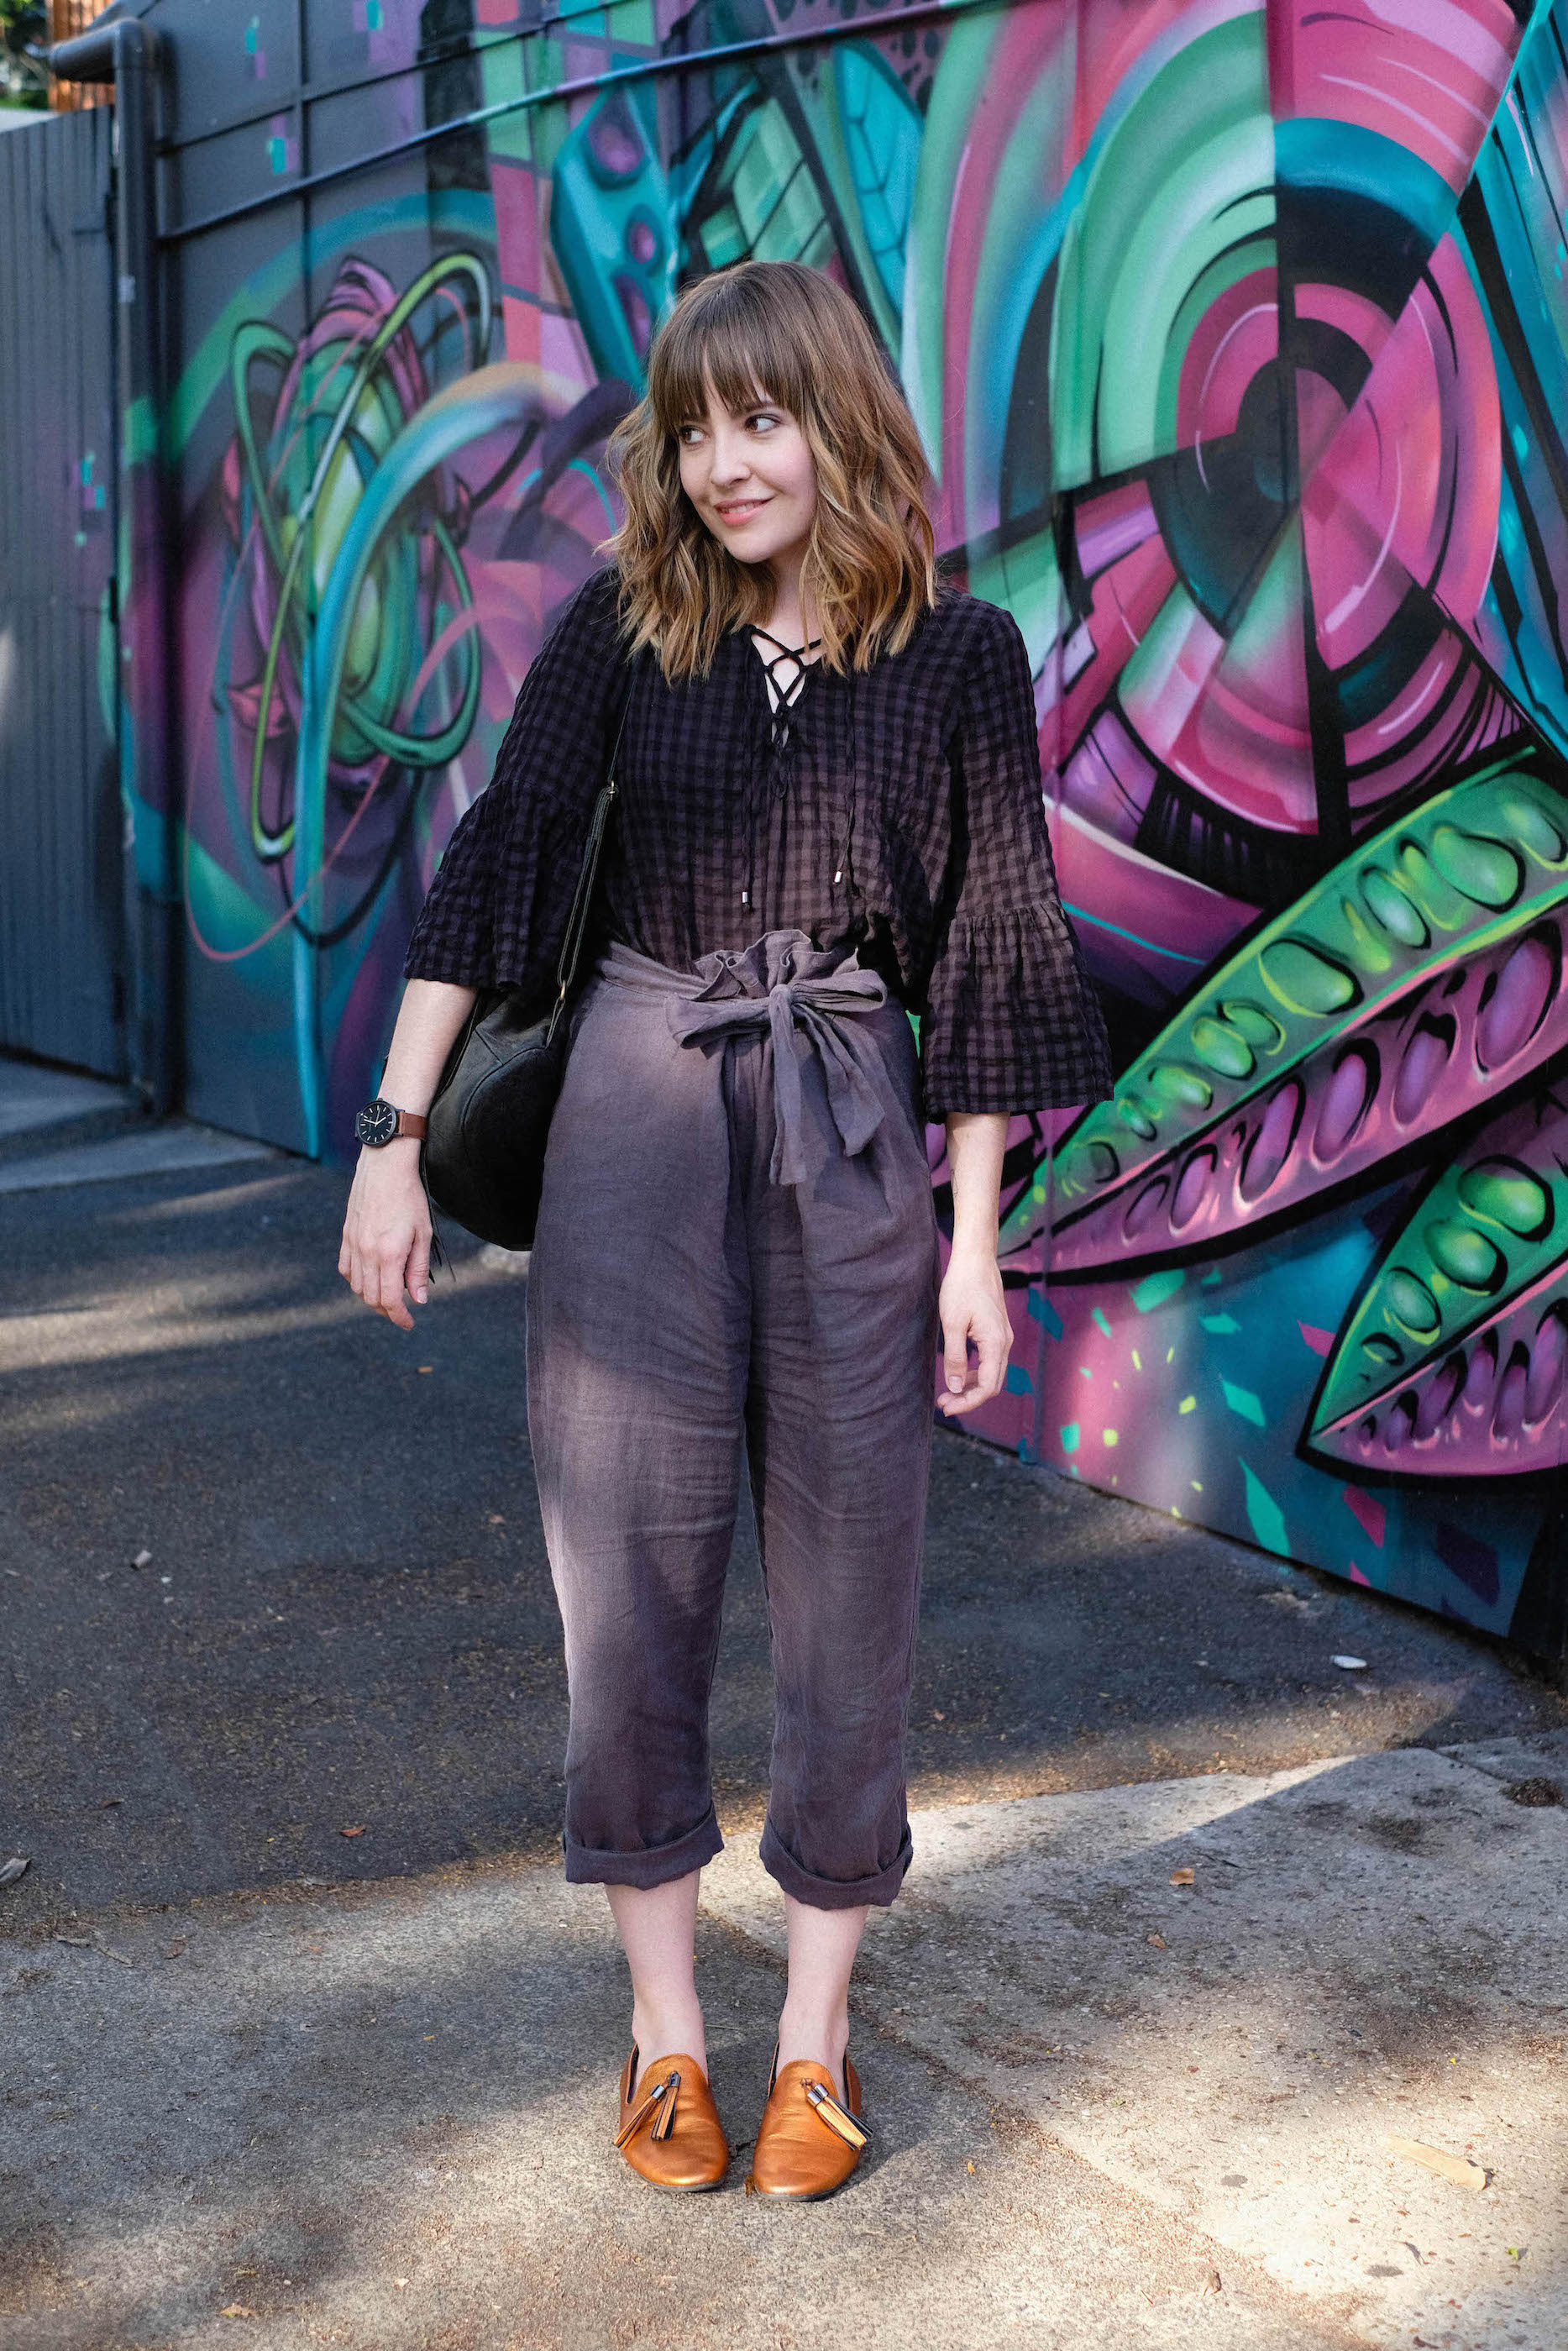 A Week Of Outfits With Leah Musch on The Good Trade